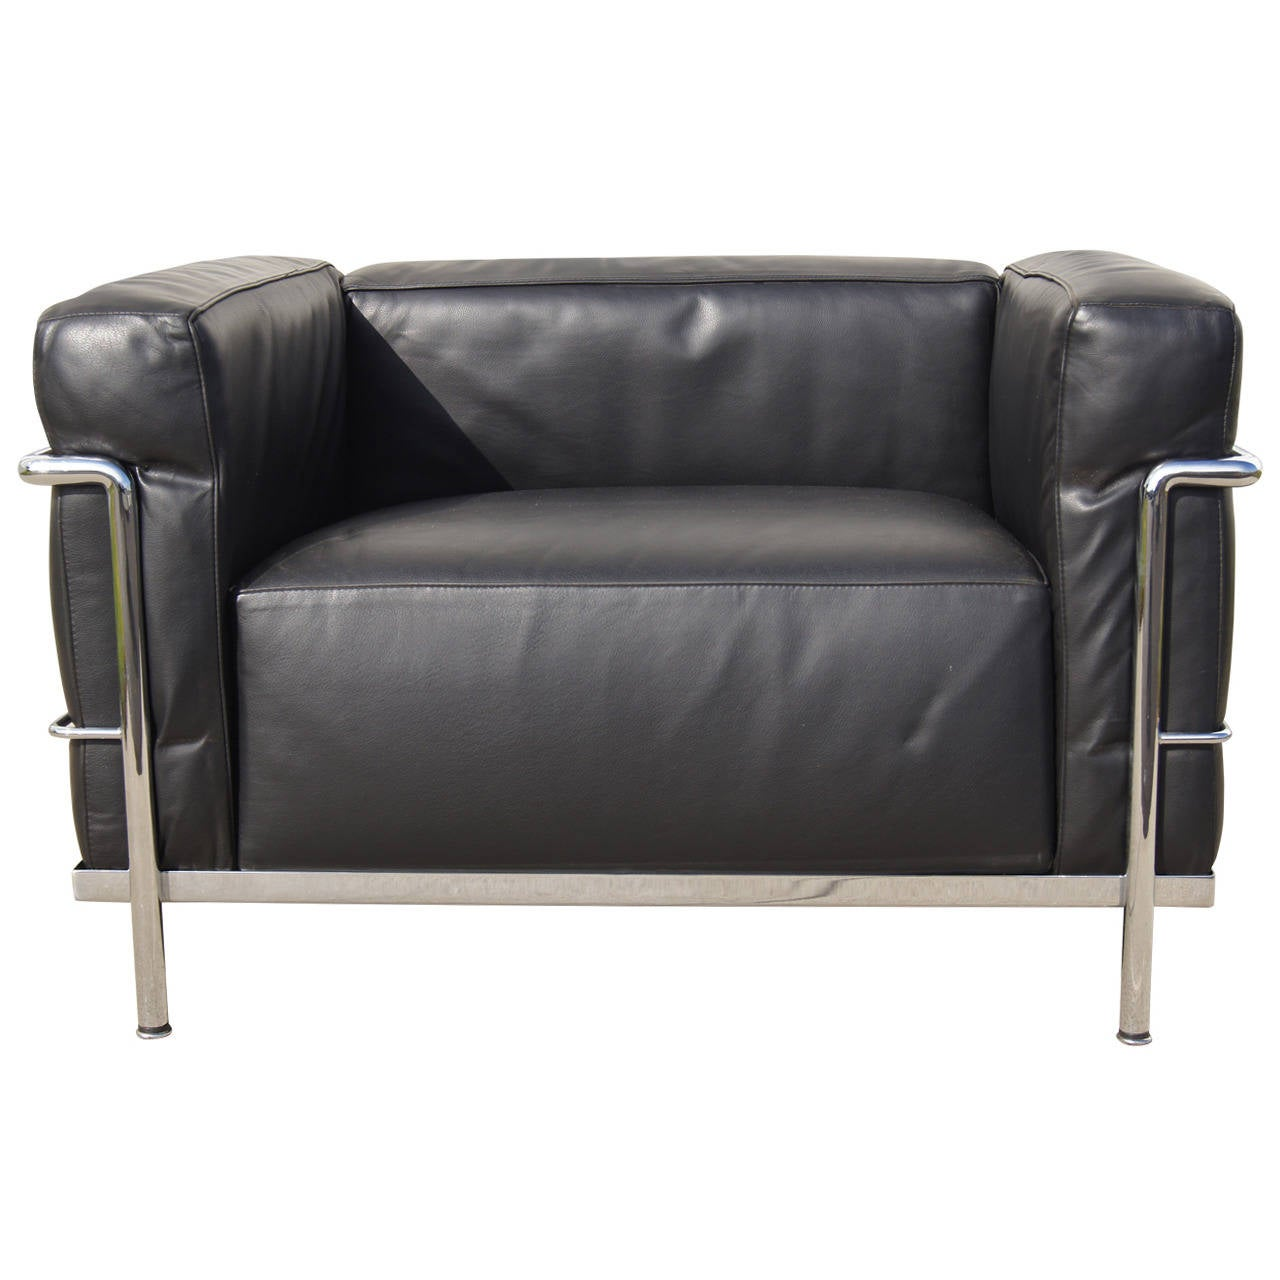 Amazing LC3 Grand Confort Lounge Chair By Le Corbusier For Sale Gallery